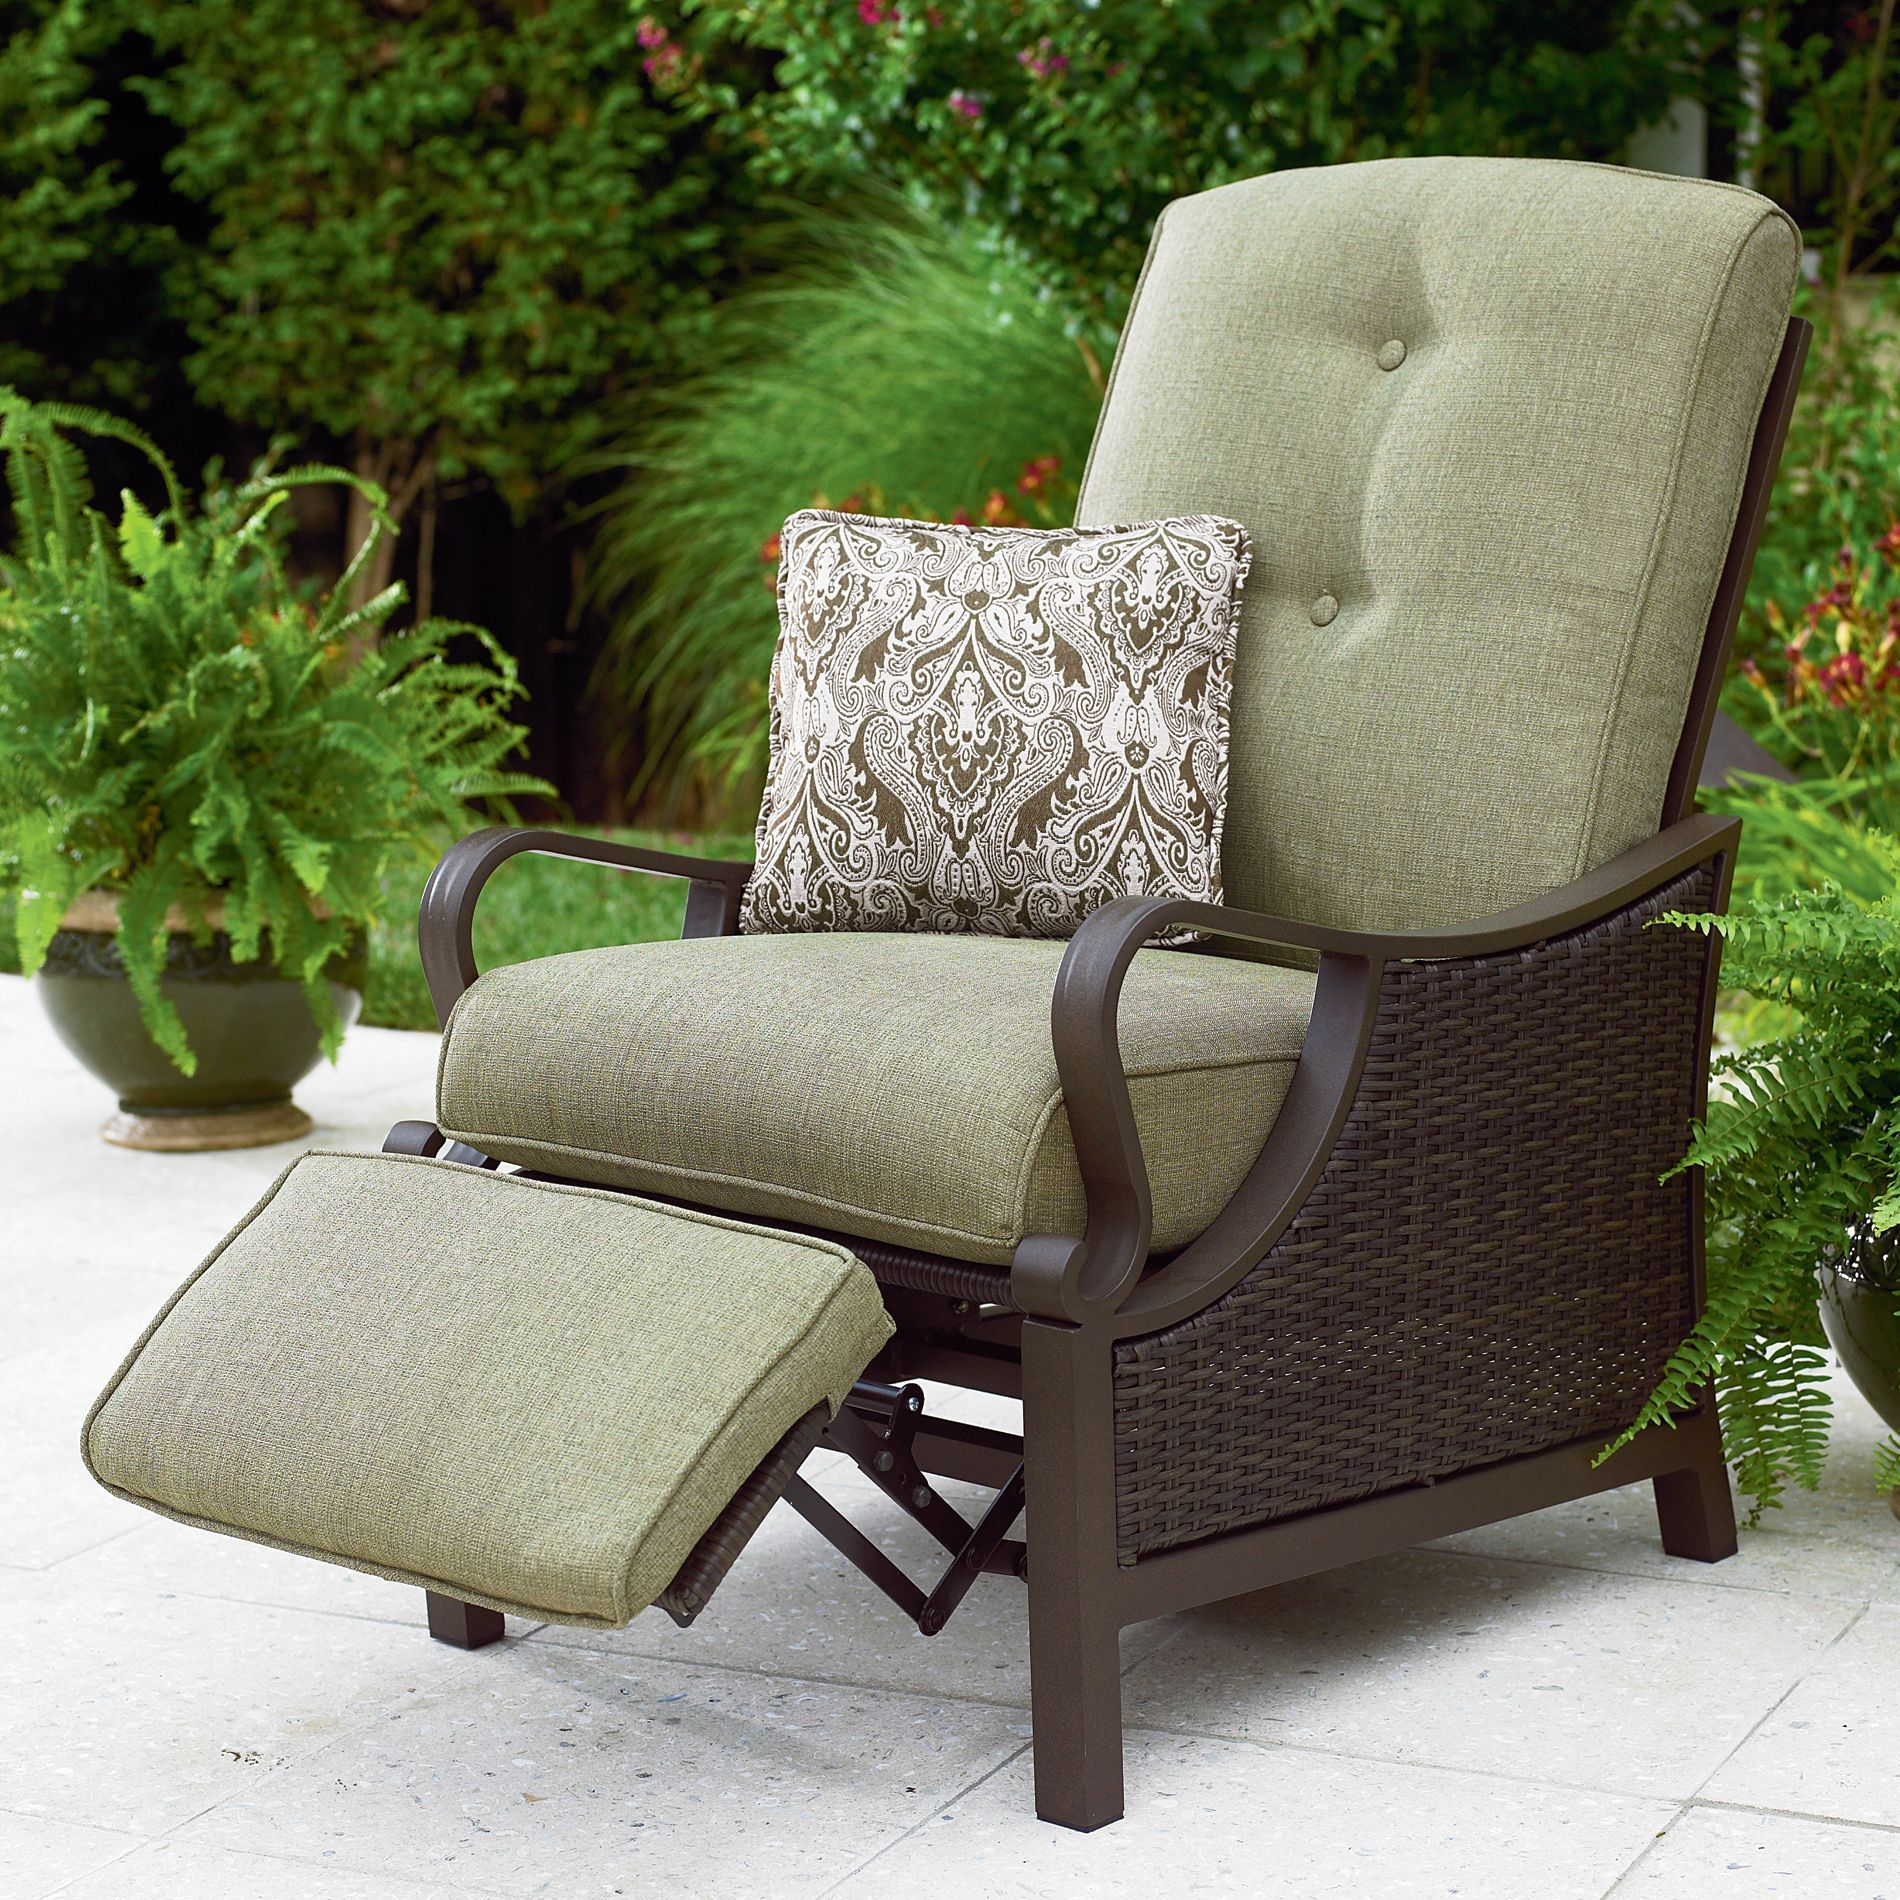 Sears Com Lounge Chair Outdoor Outdoor Recliner Outdoor Chairs